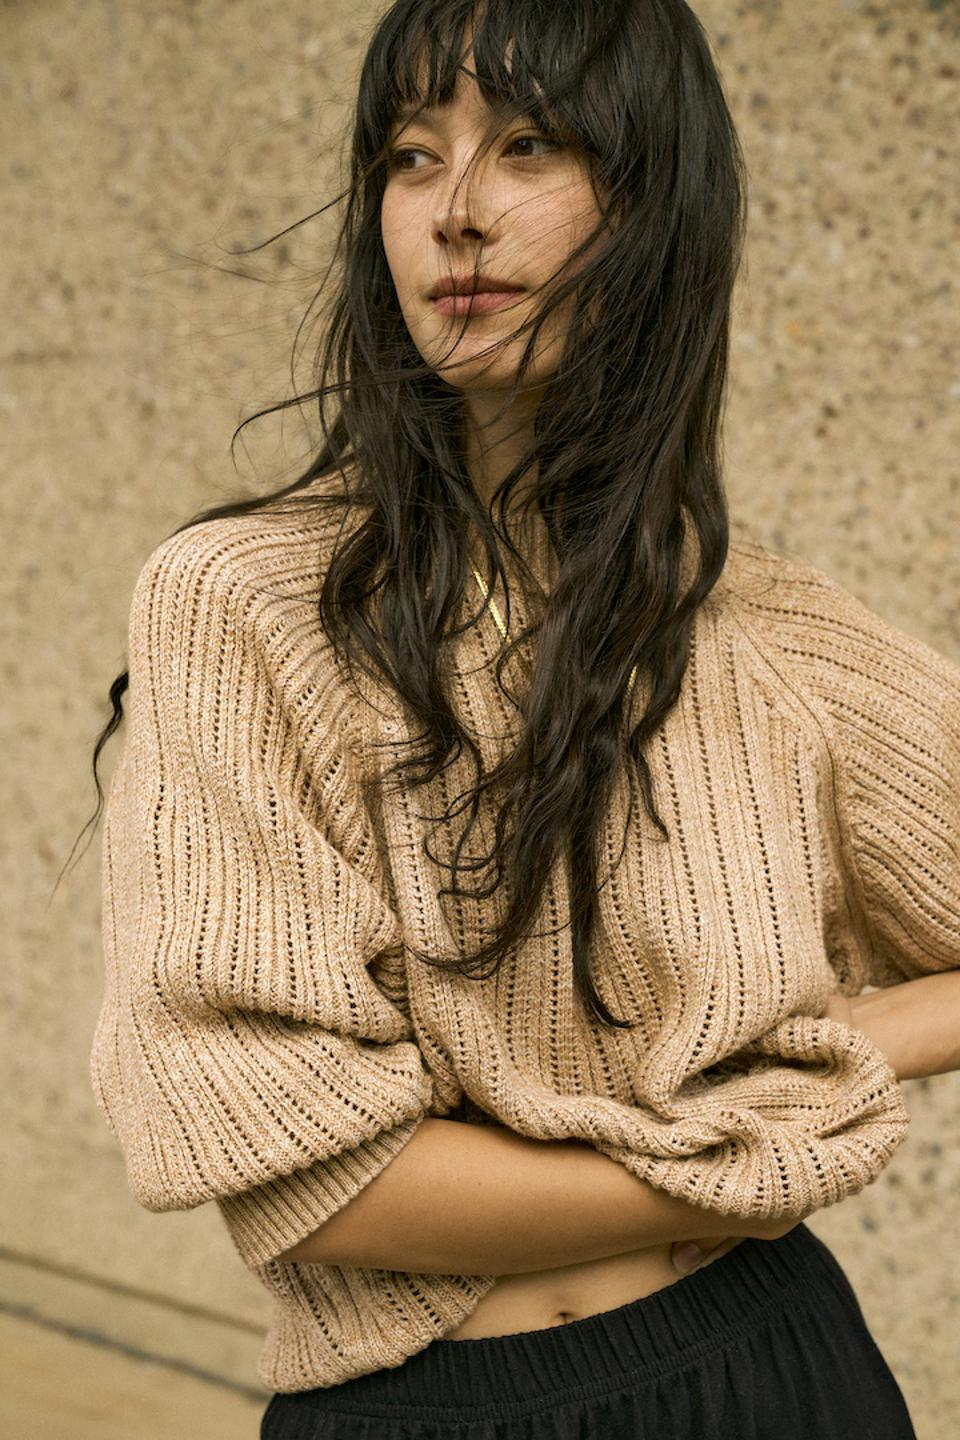 Wol Hide Sweatshirt Sweater in Earth from their Domestic Color-Grown Cotton Capsule